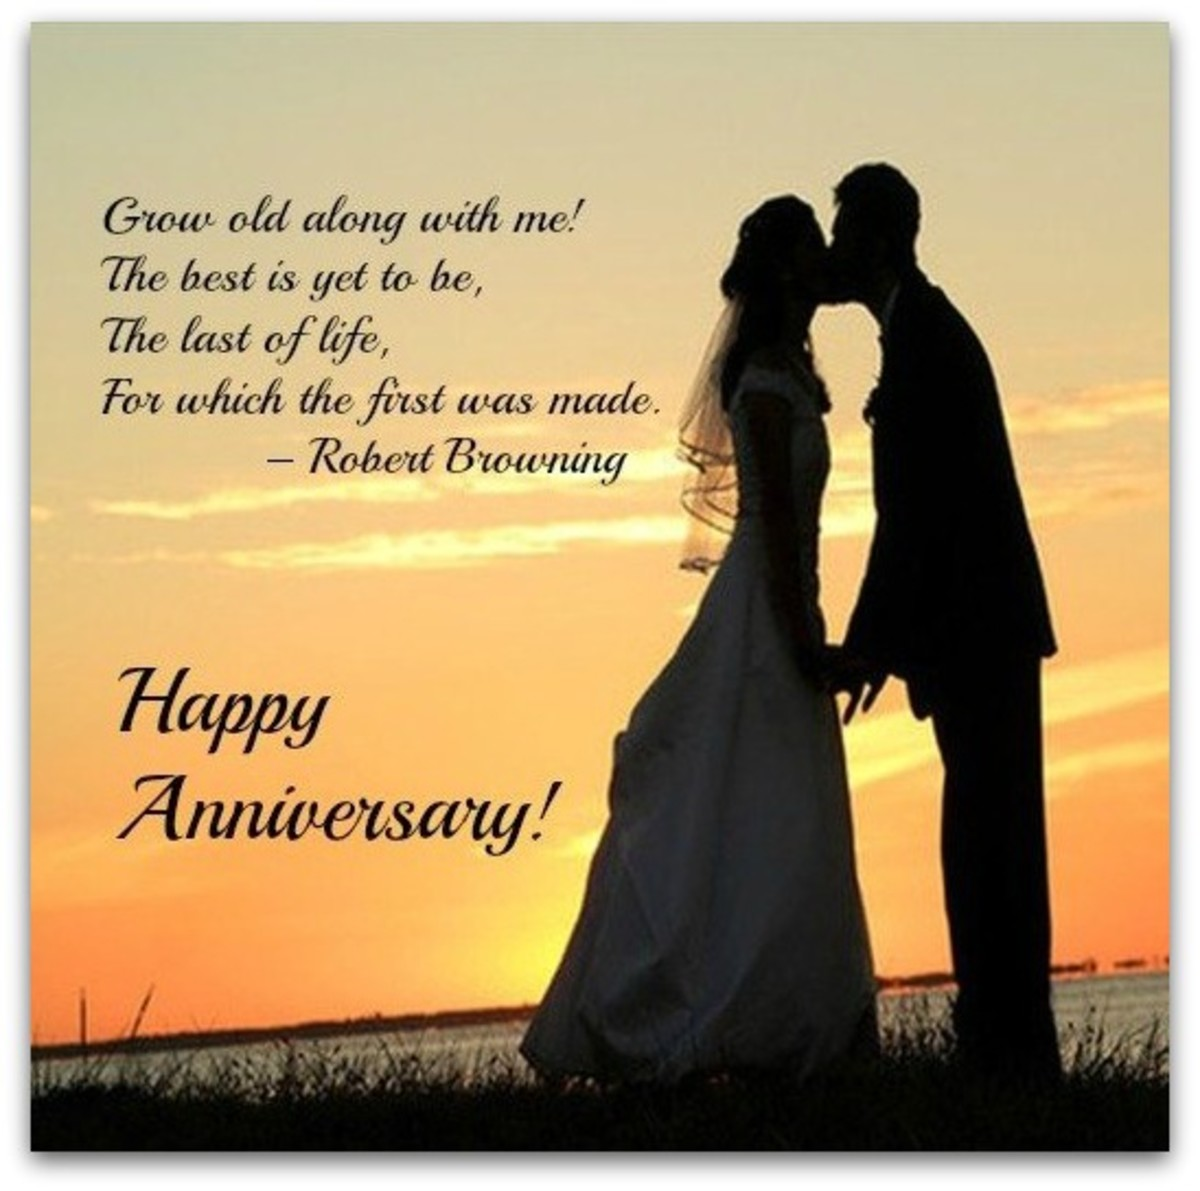 Anniversary wishes happy anniversary messages What to get my wife for first anniversary